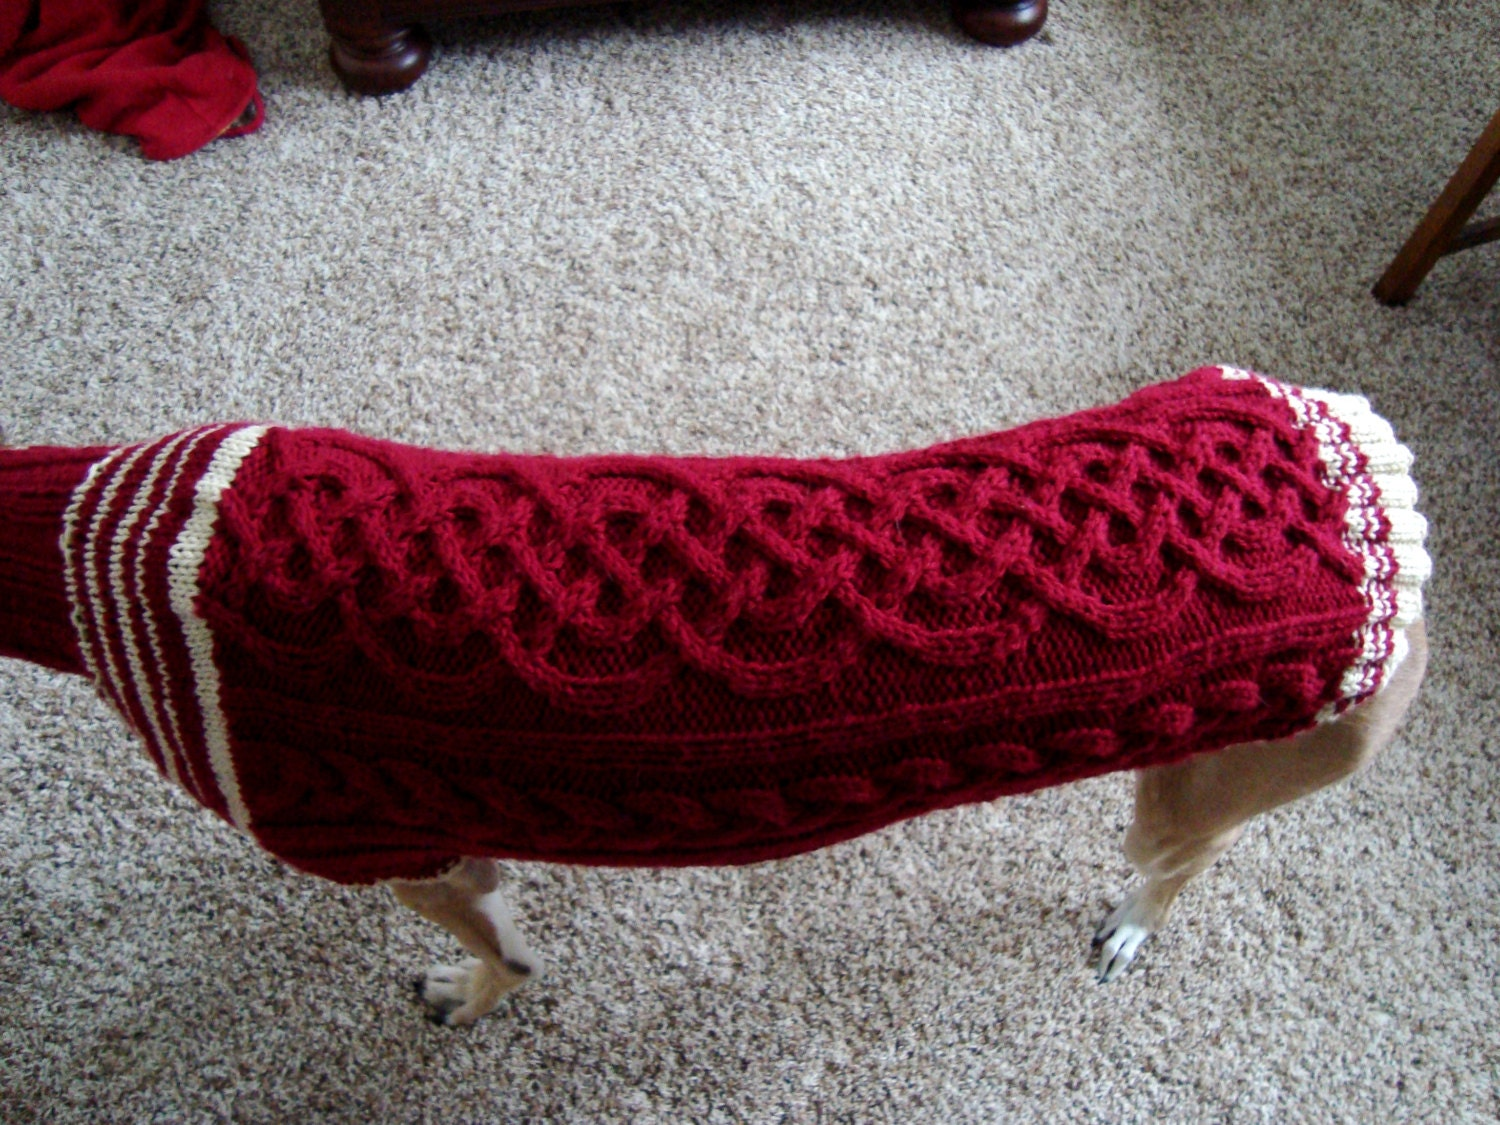 Knitting Patterns For Greyhound Dogs : dog/ greyhound sweater knitting pattern PDF file ONLY